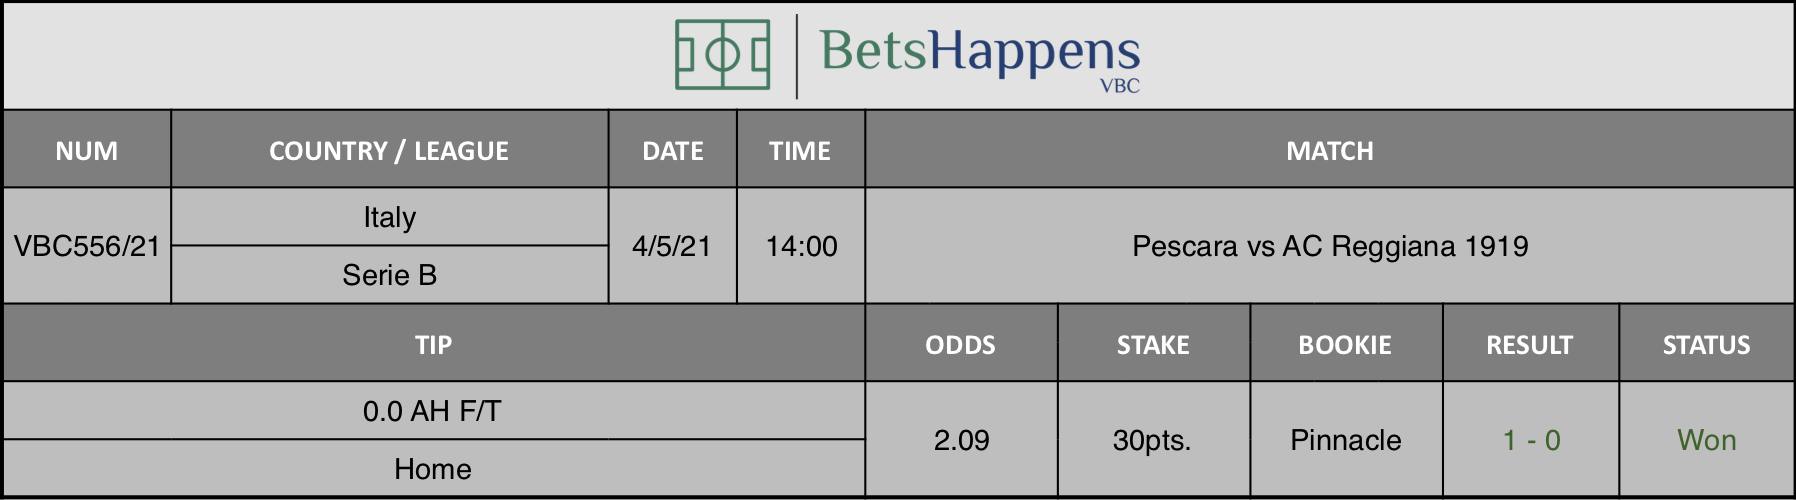 Results of our tip for the Pescara vs AC Reggiana 1919   match where 0.0 AH F/T Home is recommended.